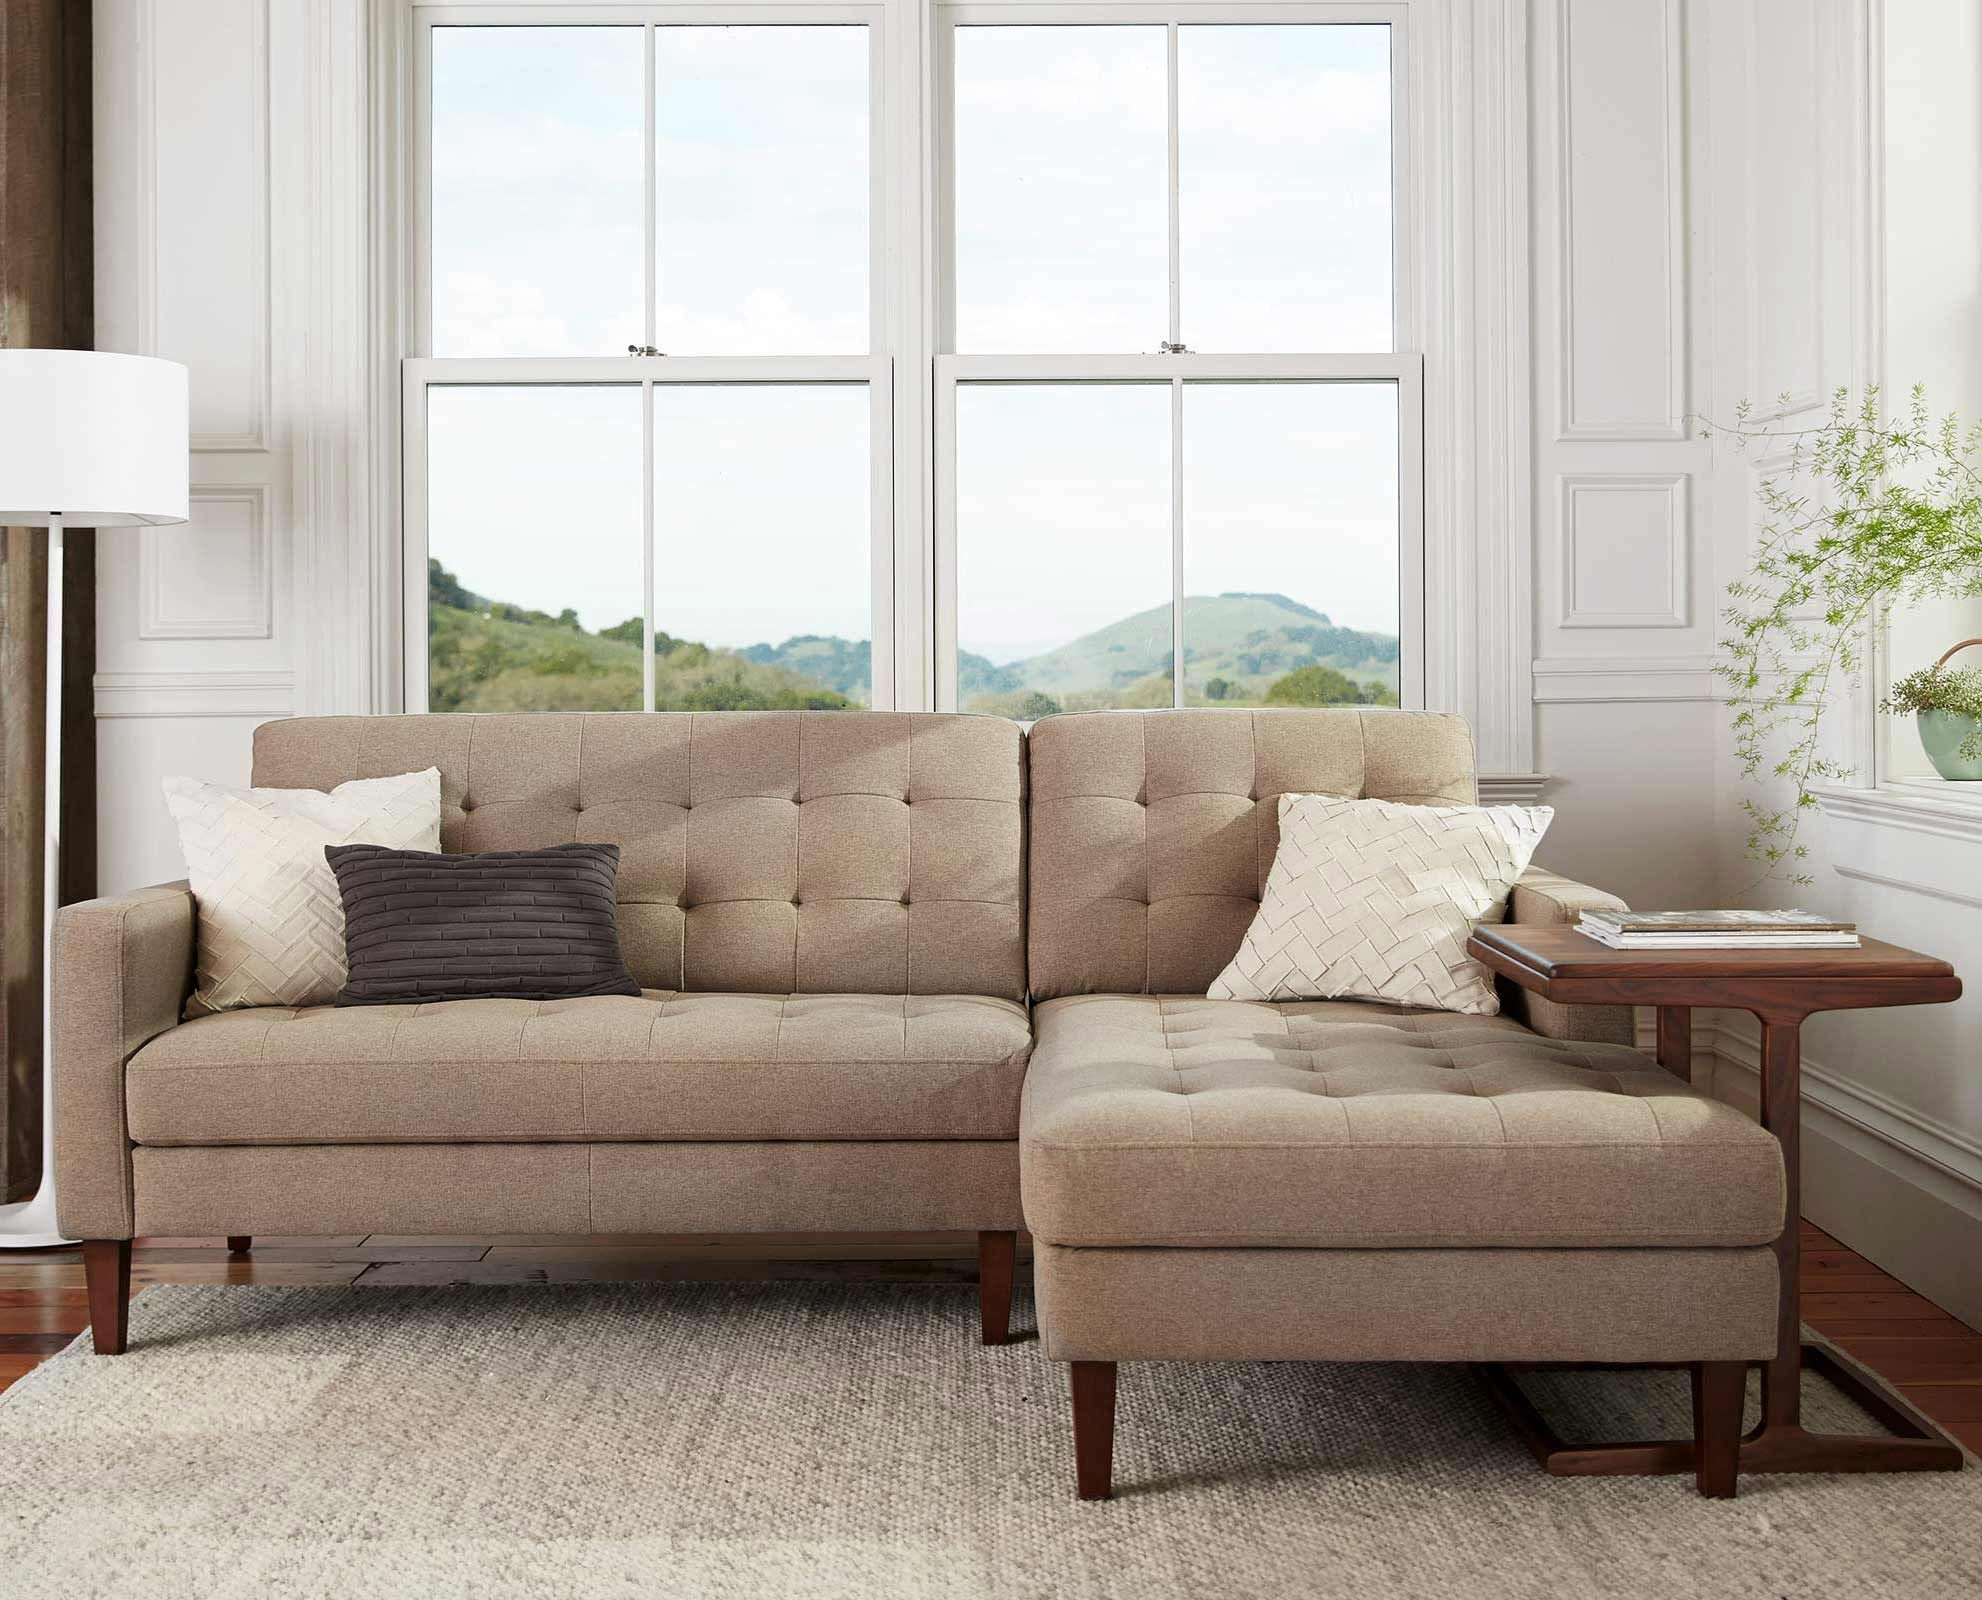 Upscale Living Room Furniture Scandinavian Designs Create A Relaxing Aesthetic With The